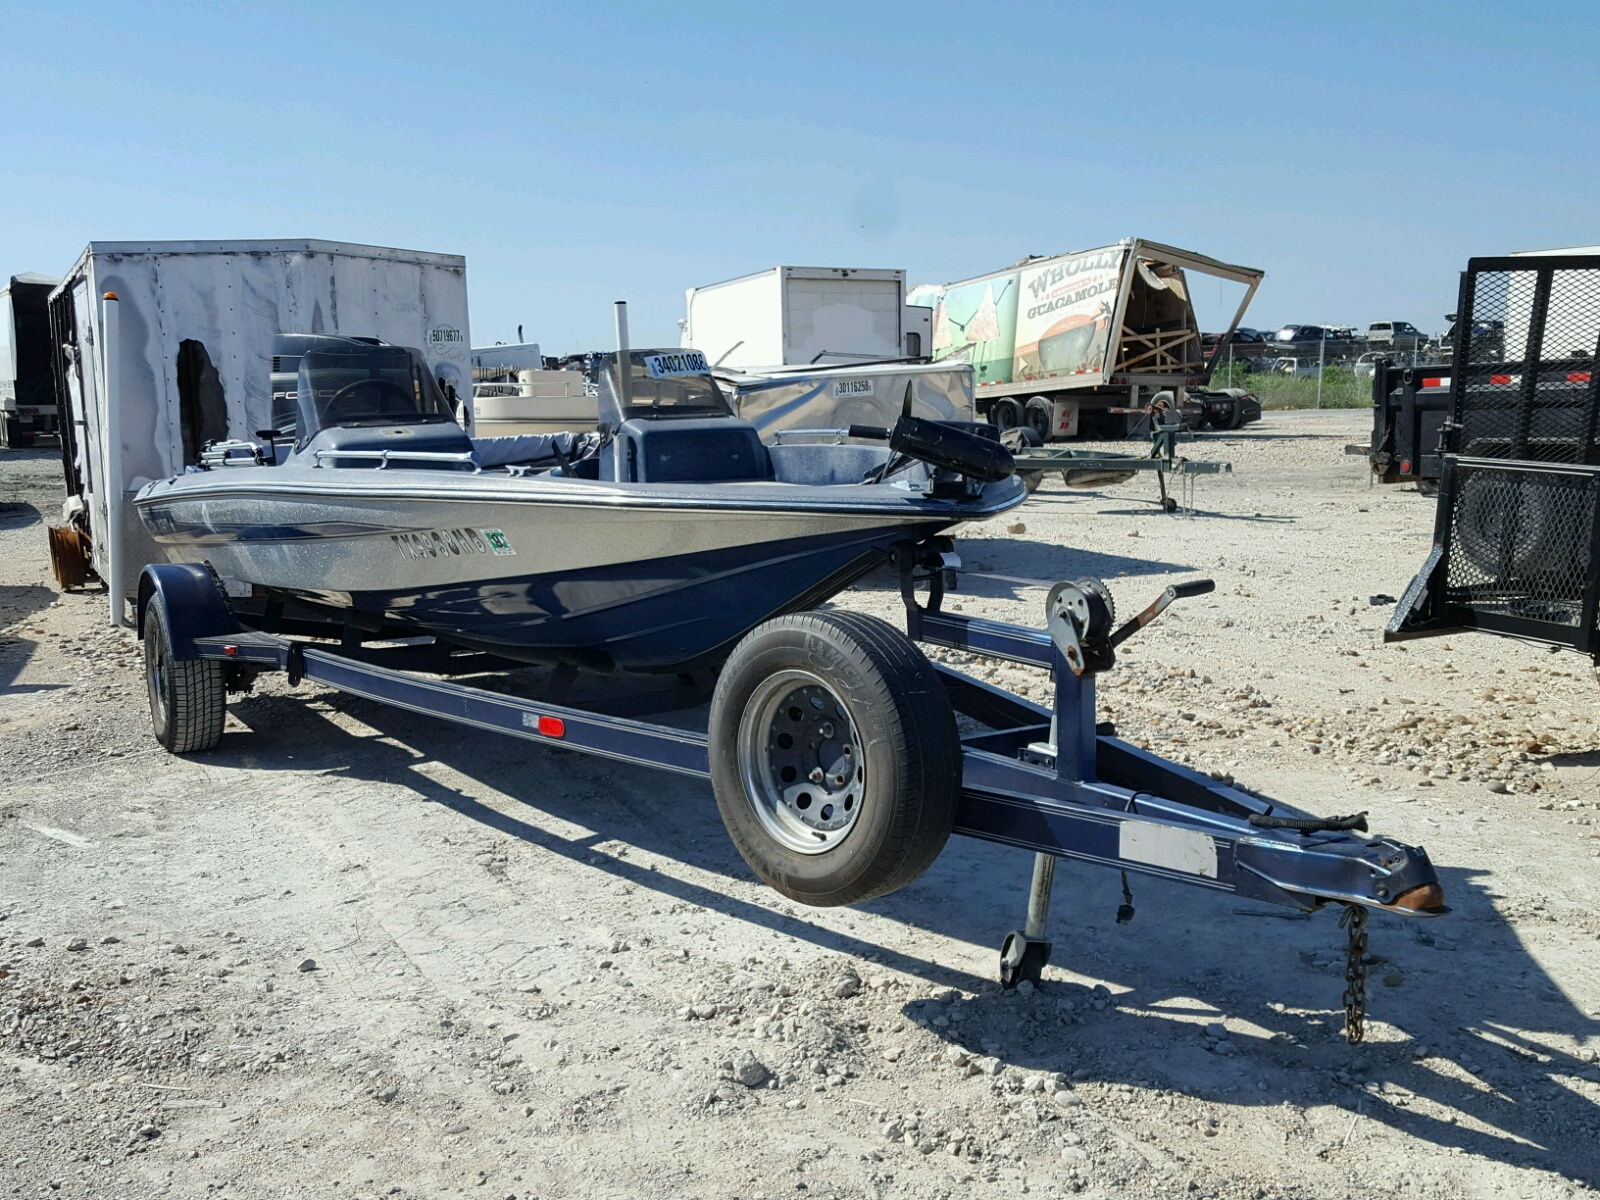 Salvage 1992 Forc BOAT for sale